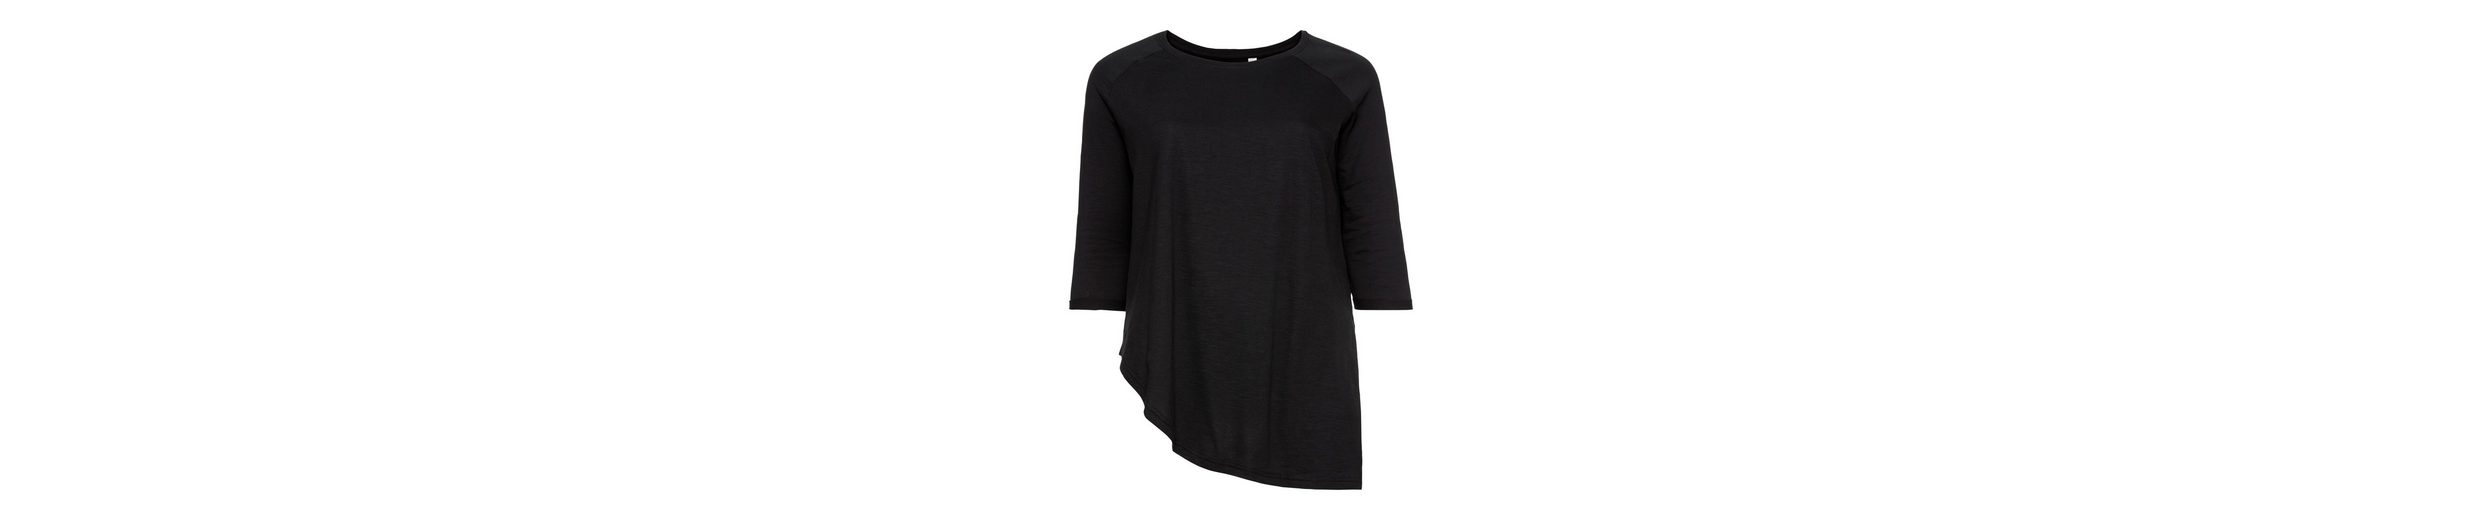 sheego in Form Shirt Oversize Arm 4 Casual 3 leichter gxqfgr